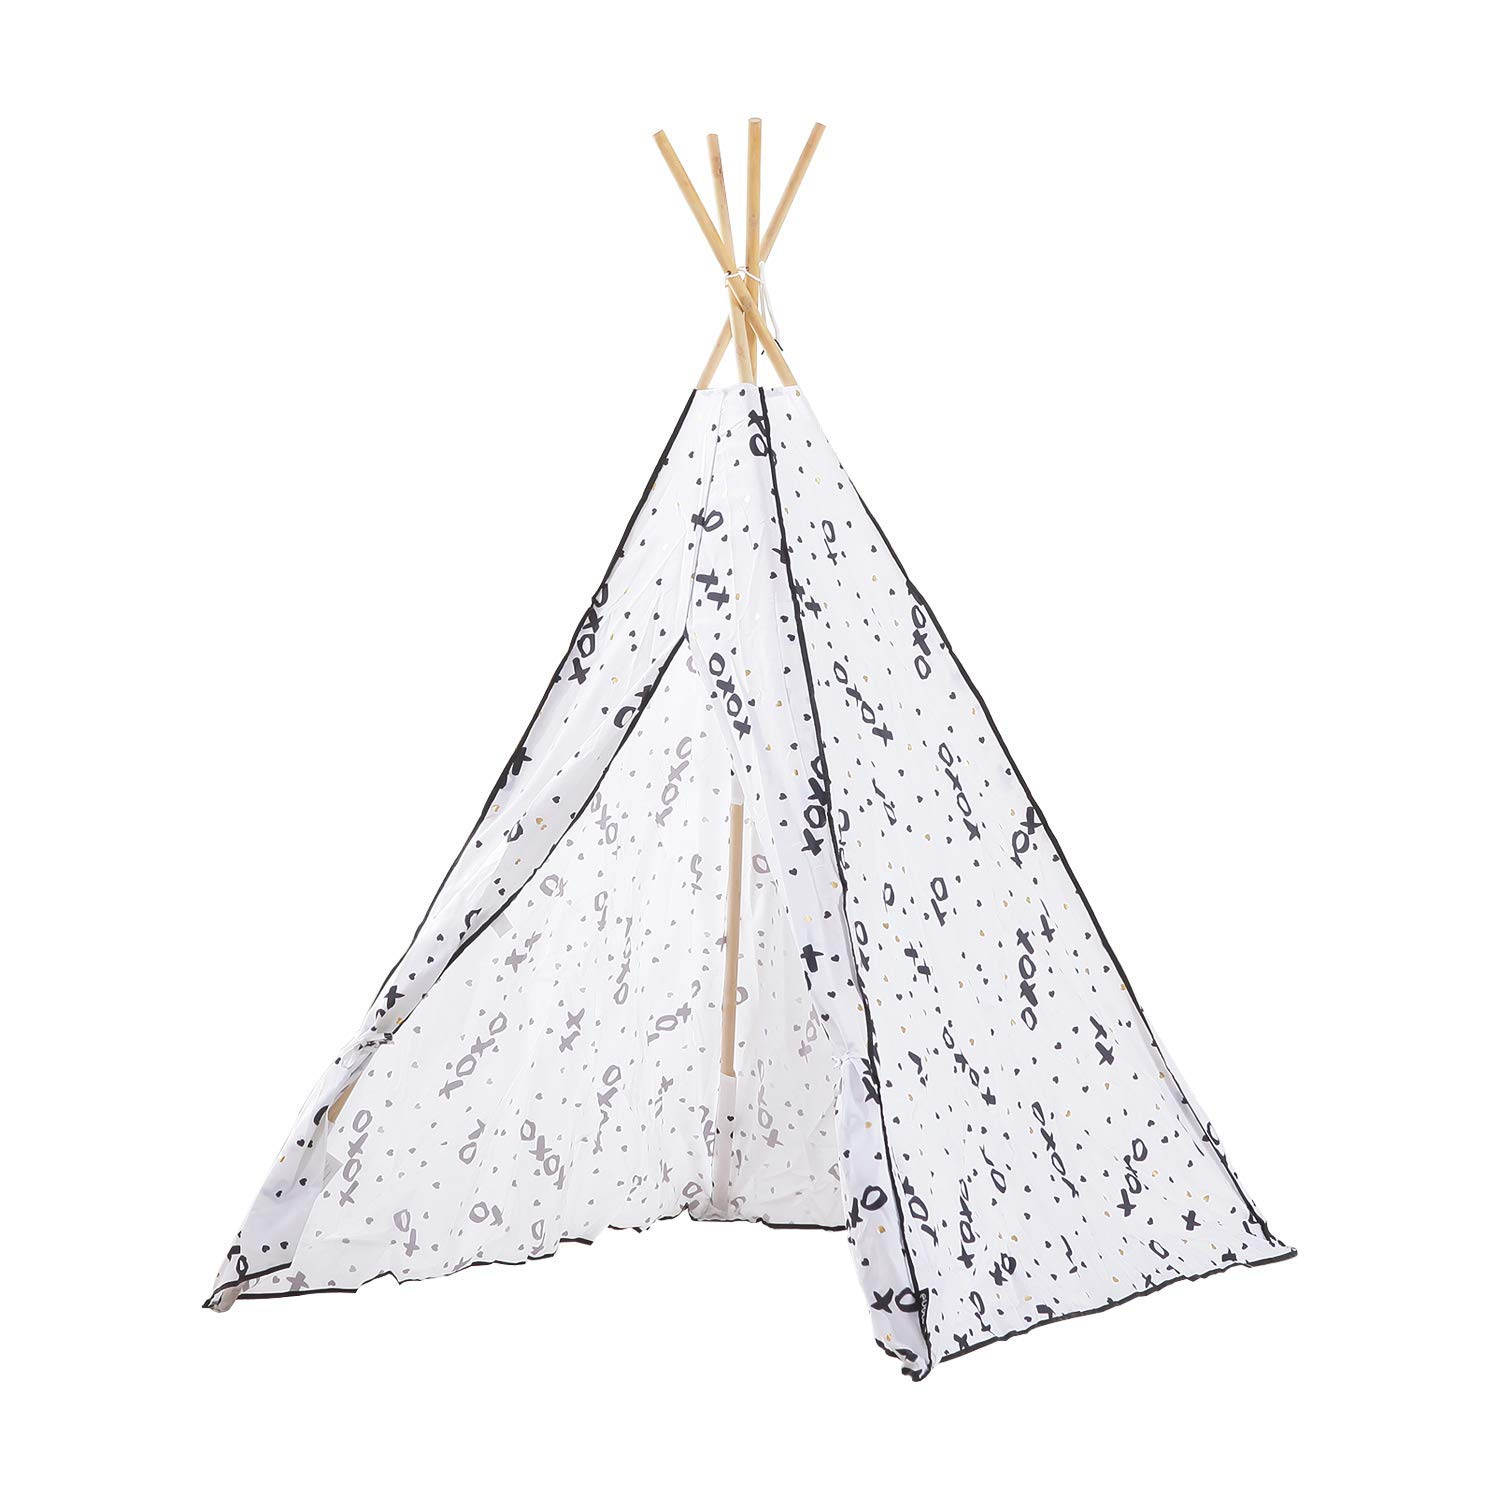 MallBest MallBest Kids Play Canvas Tents Indian Teepee [並行輸入品] Tent Children Playhouse Canvas Portable for Indoor and Outdoor (Grey) [並行輸入品] B07R4V2VG8, 両神村:e2ab74ba --- number-directory.top